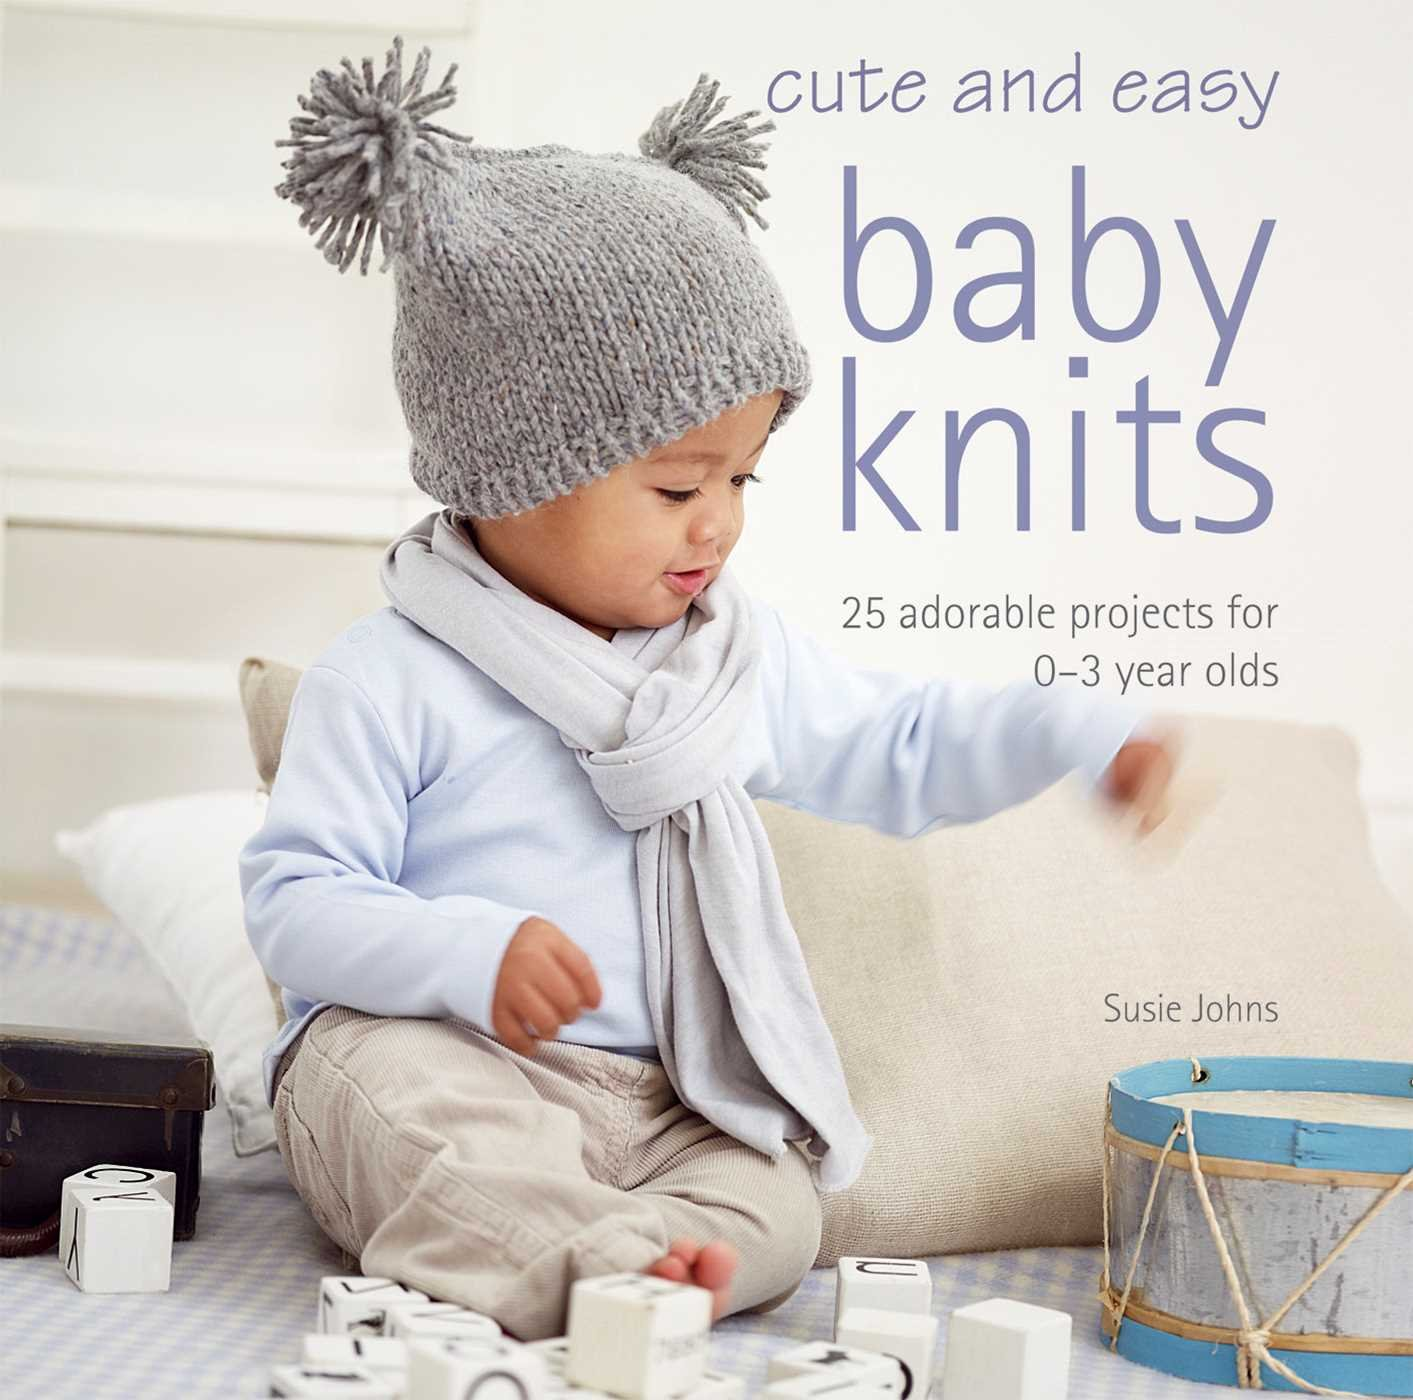 amazon cute and easy baby knits 25 adorable projects for 0 3 year